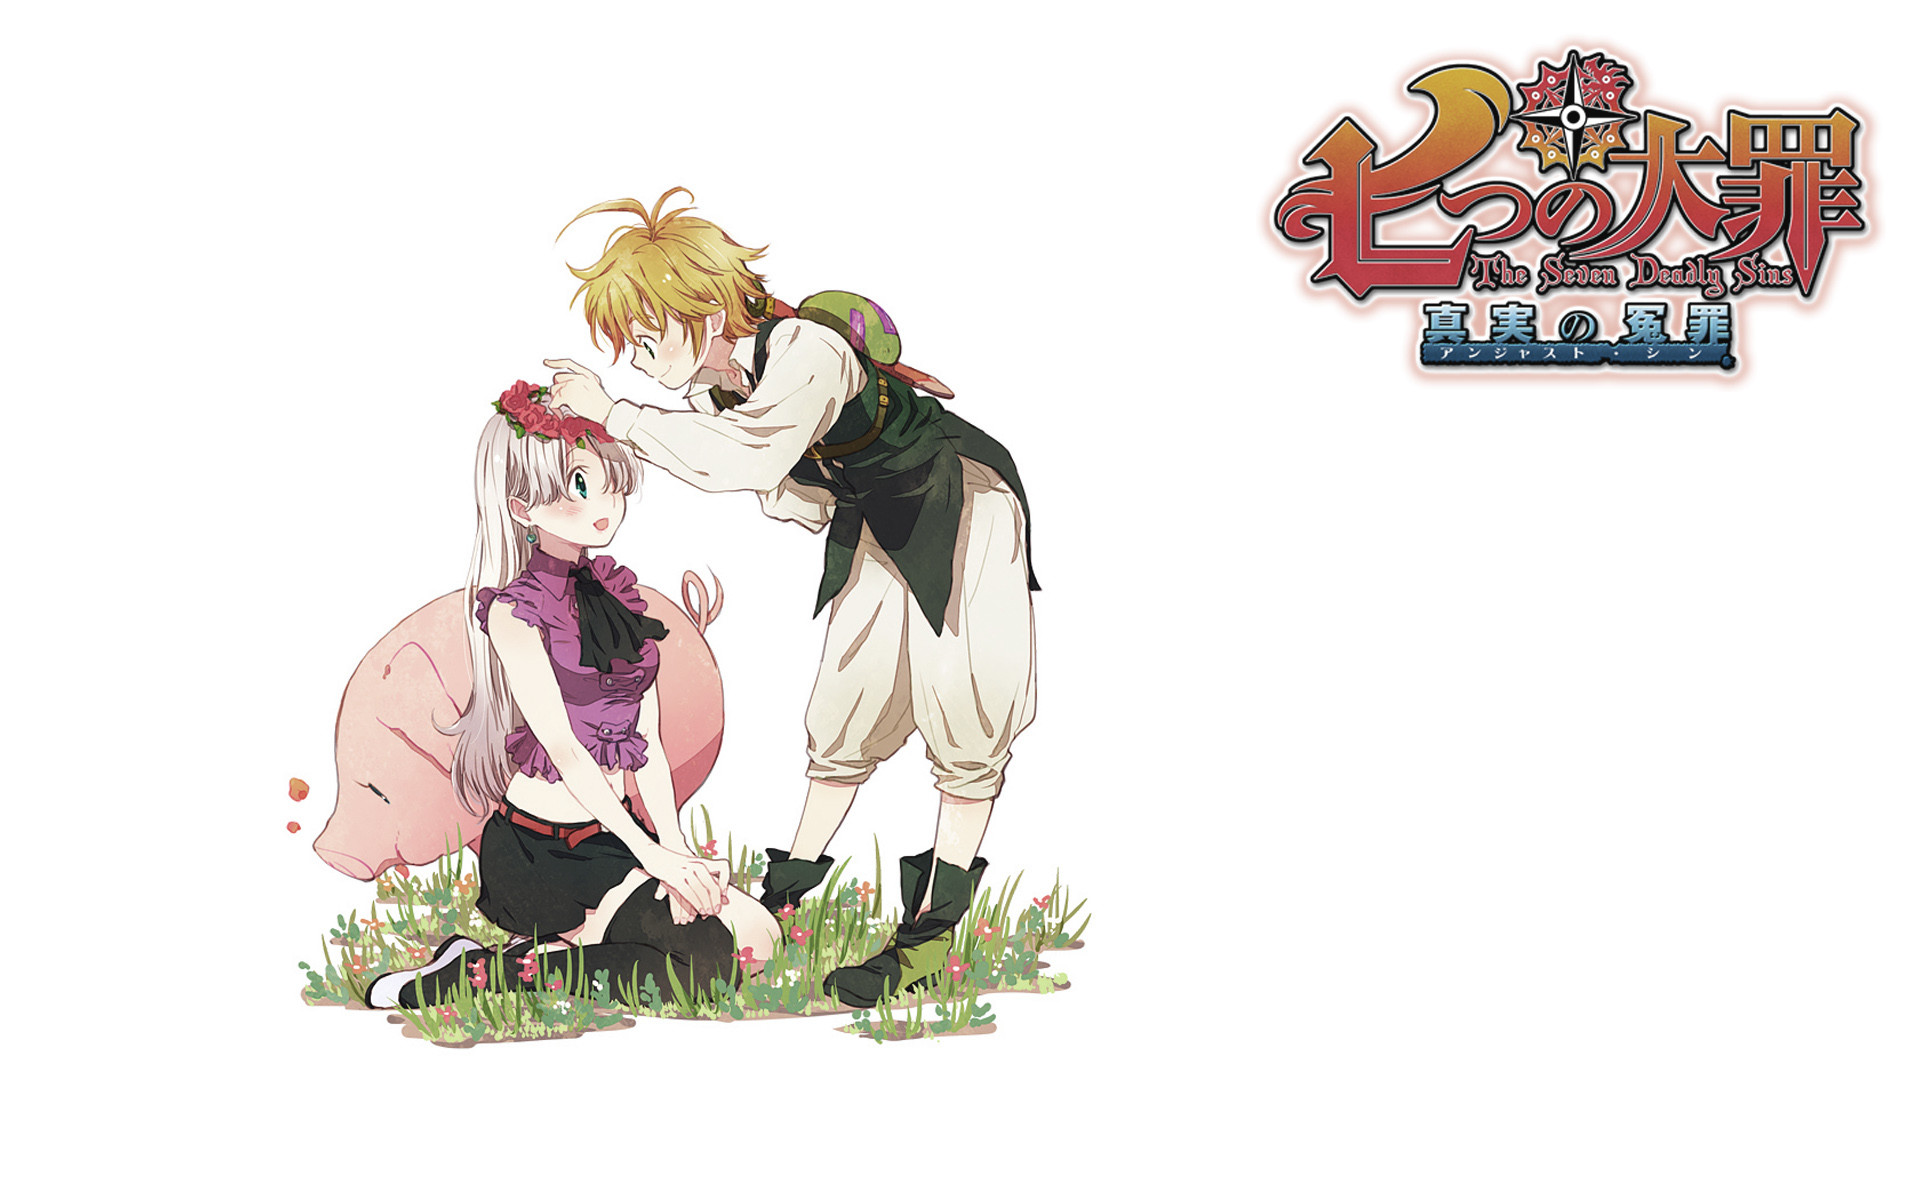 1920x1200 Nanatsu no Taizai akaThe Seven Deadly Sins - Wallpapers - Anime Desu